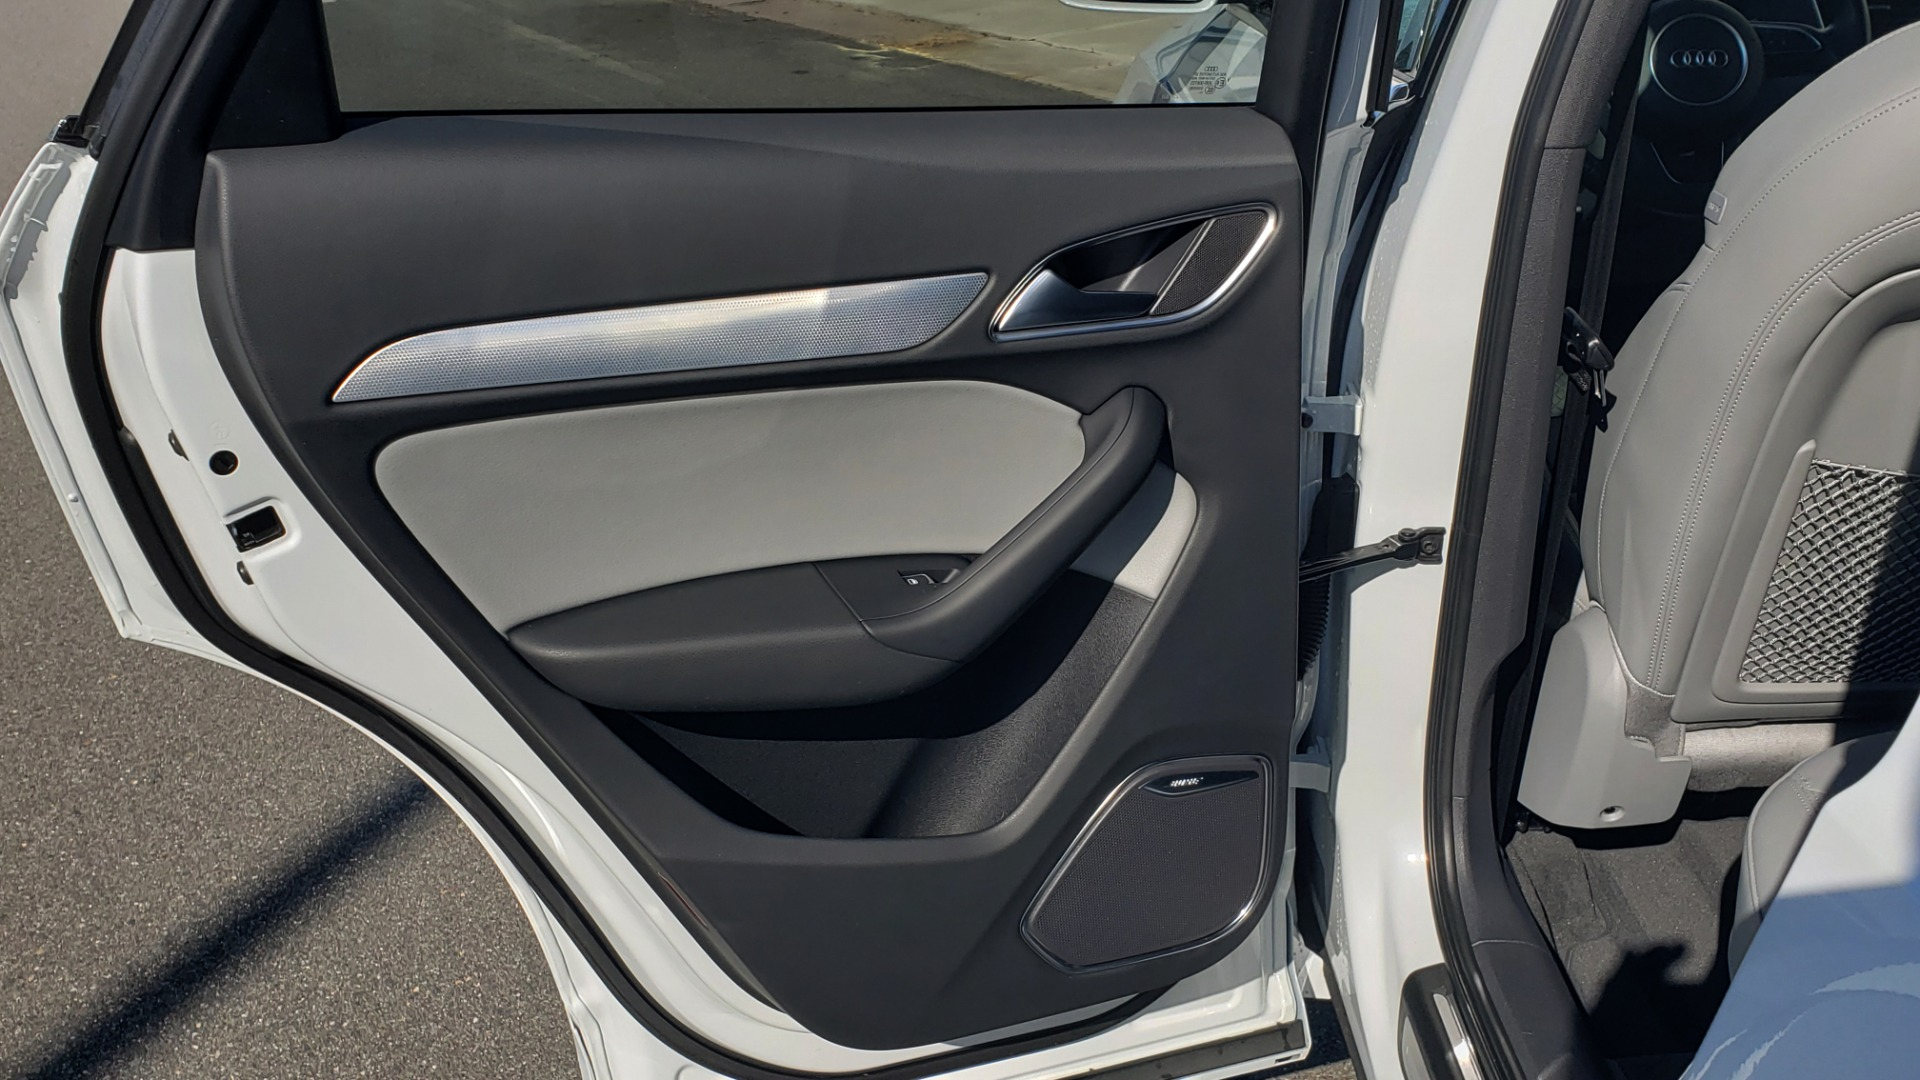 Used 2018 Audi Q3 PREMIUM PLUS 2.0T / SPORT PKG / NAV / BOSE / SUNROOF / REARVIEW for sale Sold at Formula Imports in Charlotte NC 28227 55